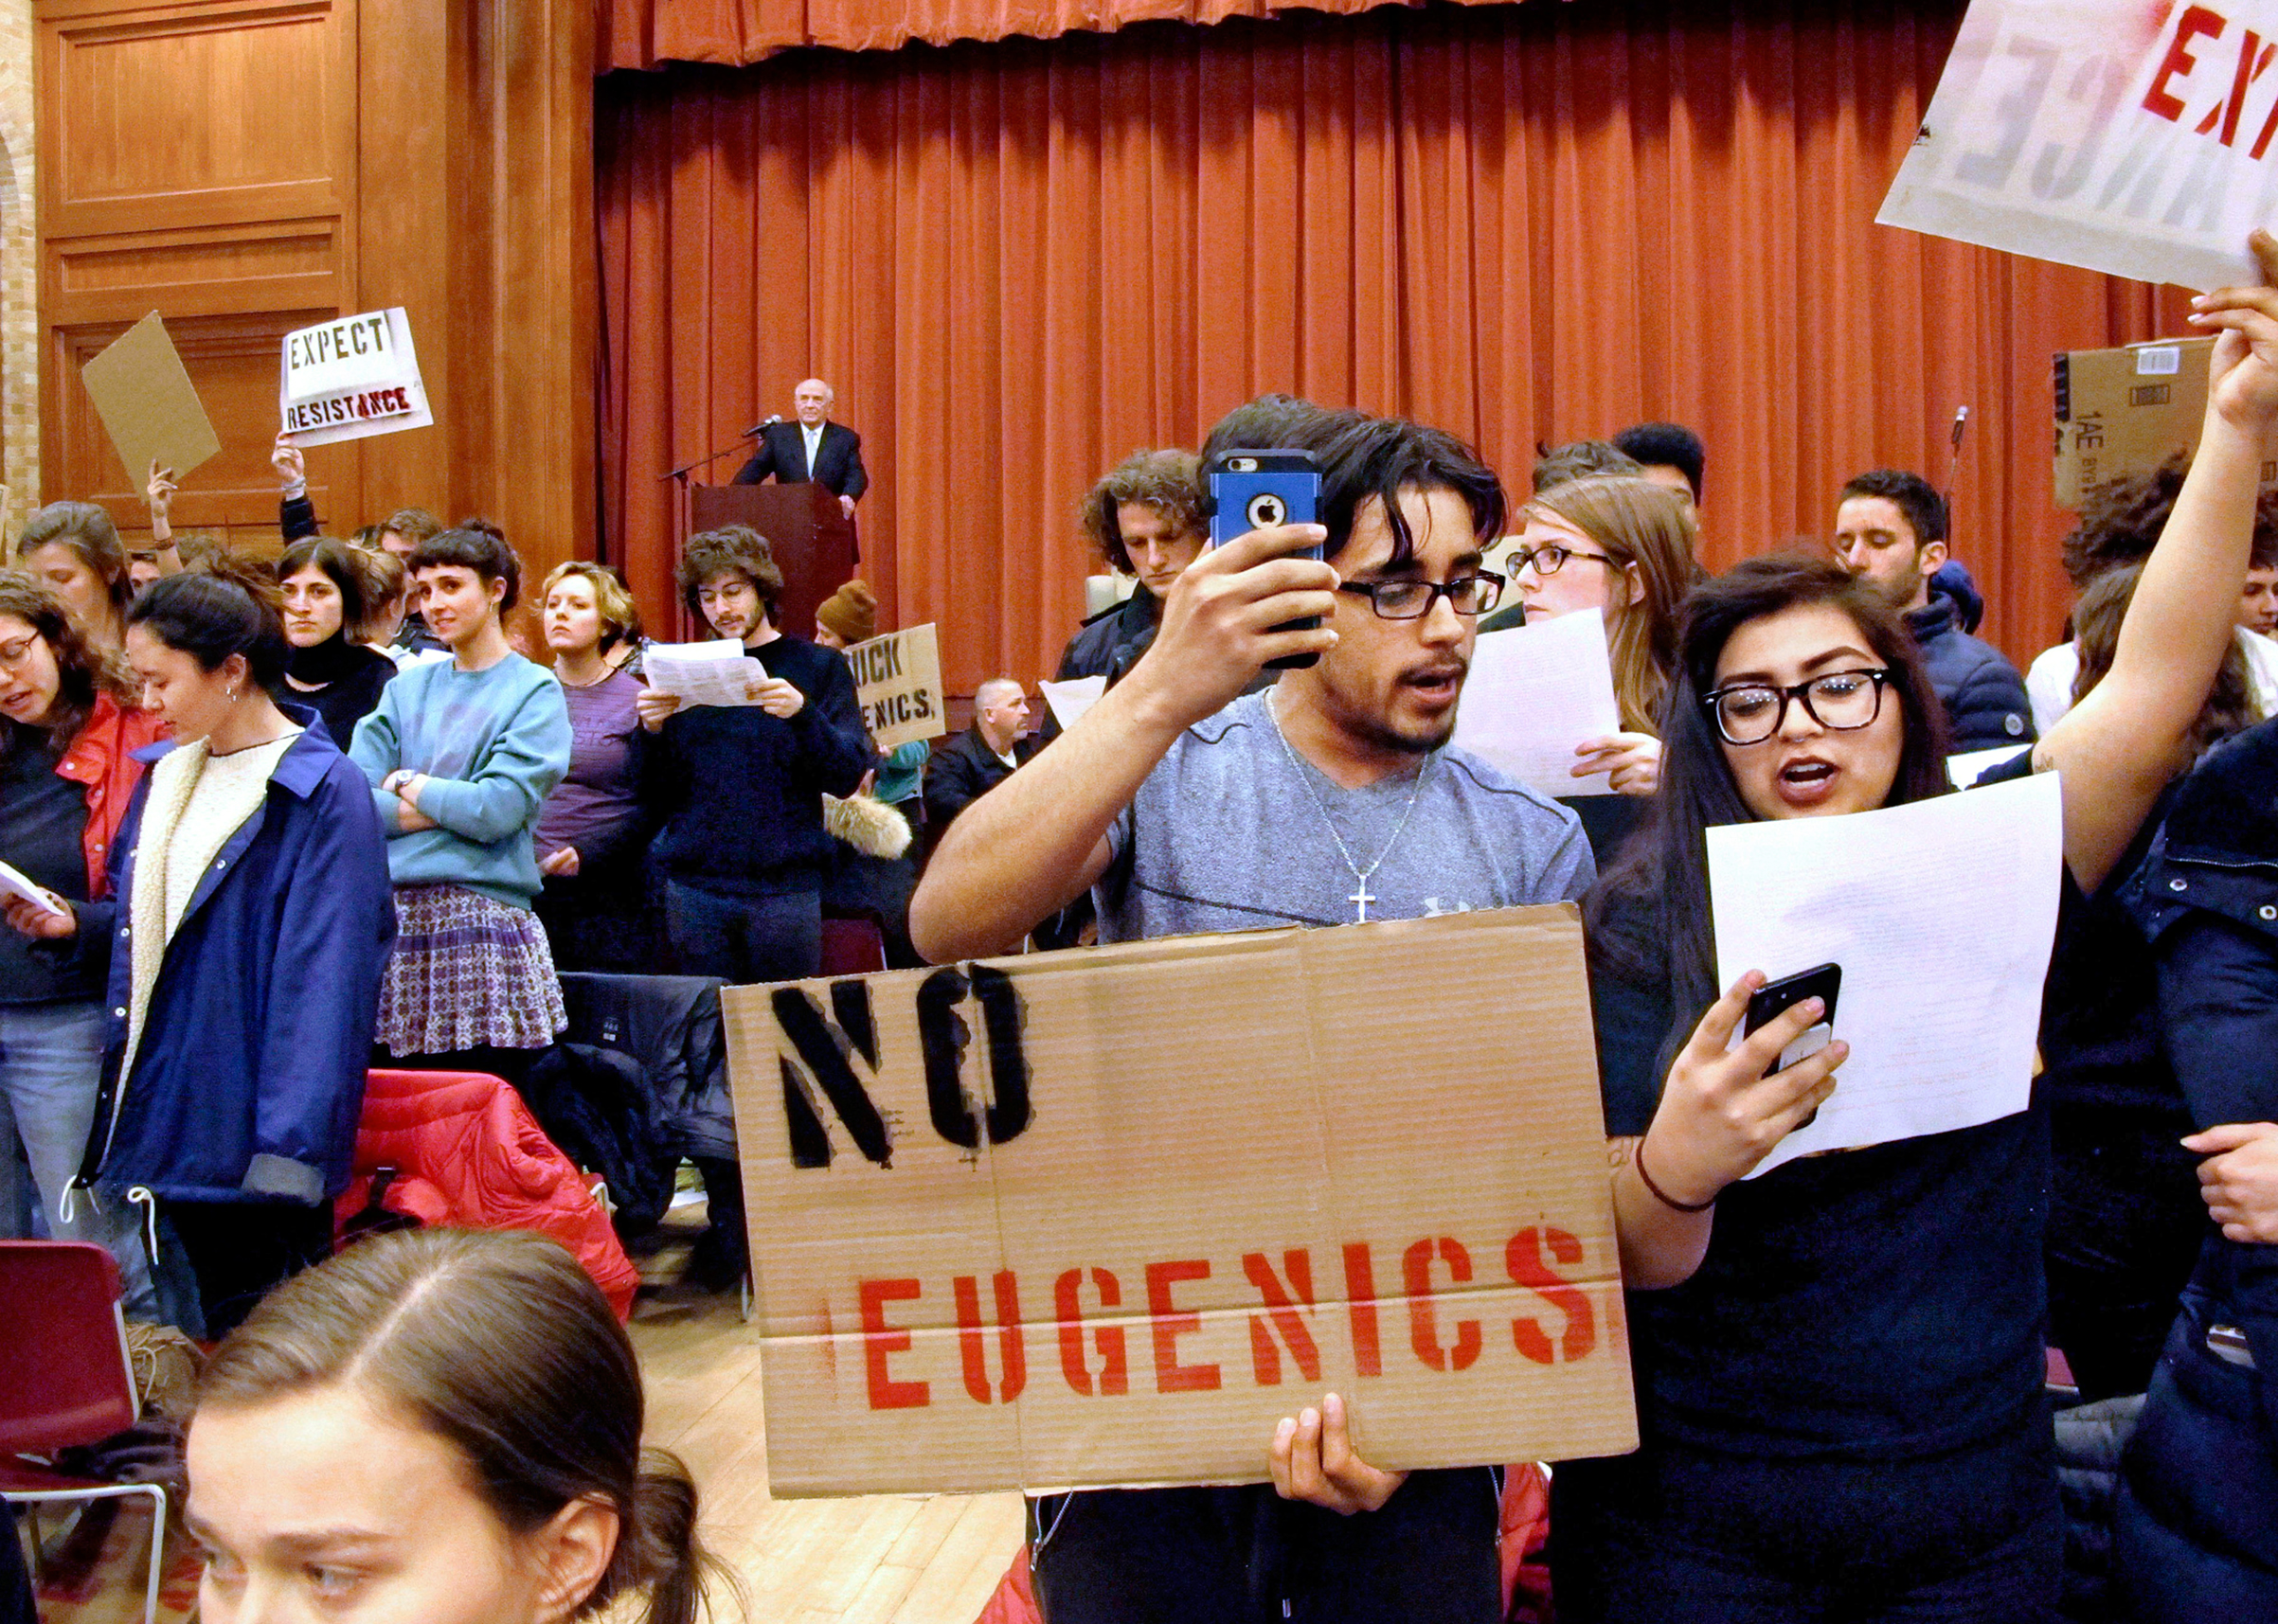 Students at Middlebury College shouted down Charles Murray rather than listen to hiscontroversial ideas when he came to speak at their campus in March